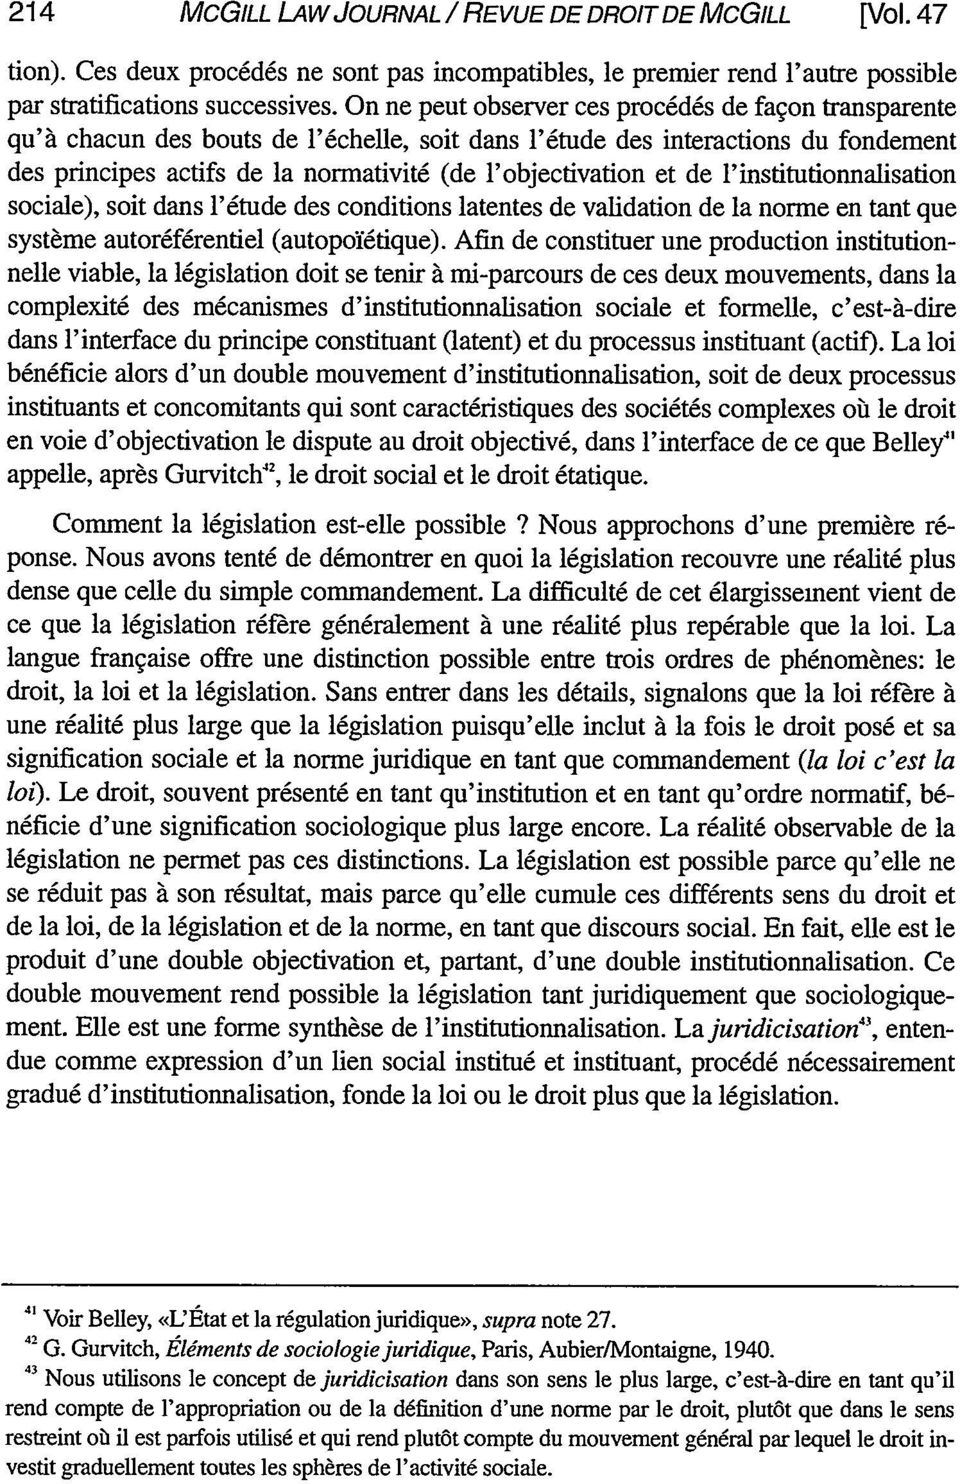 et de l'institutionnalisation sociale), soit dans l'6tude des conditions latentes de validation de la norme en tant que syst~me autor6f6rentiel (autopoi6tique).